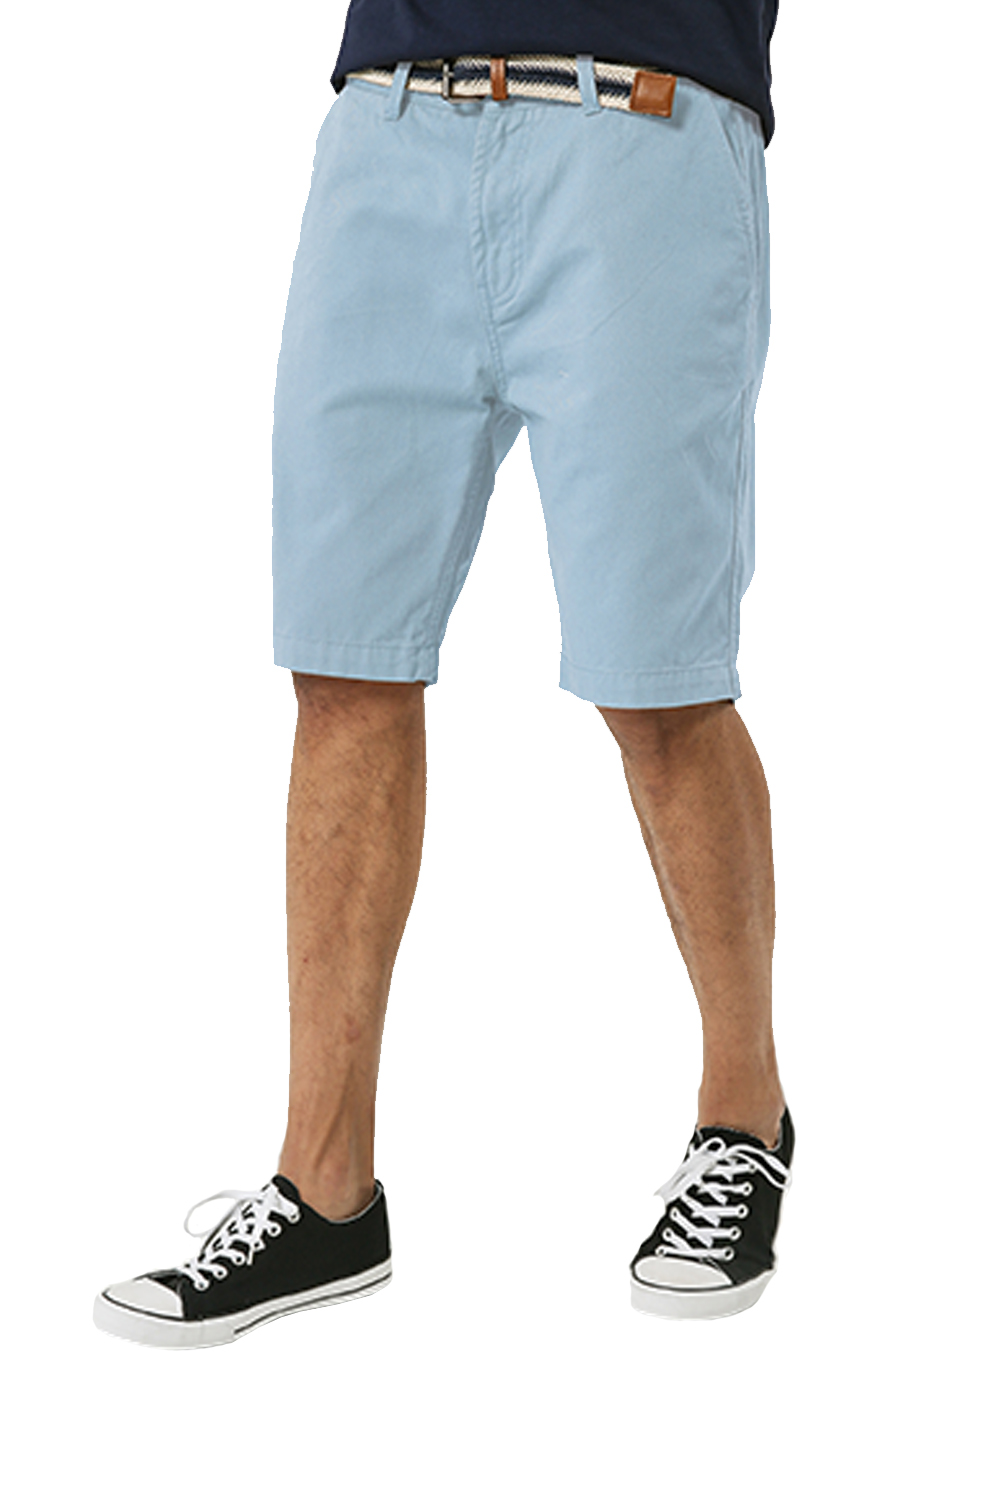 Threadbare-Mens-Slim-Fit-Belted-Chino-Shorts-Summer-Casual-Cotton-Smart-Bottoms thumbnail 33